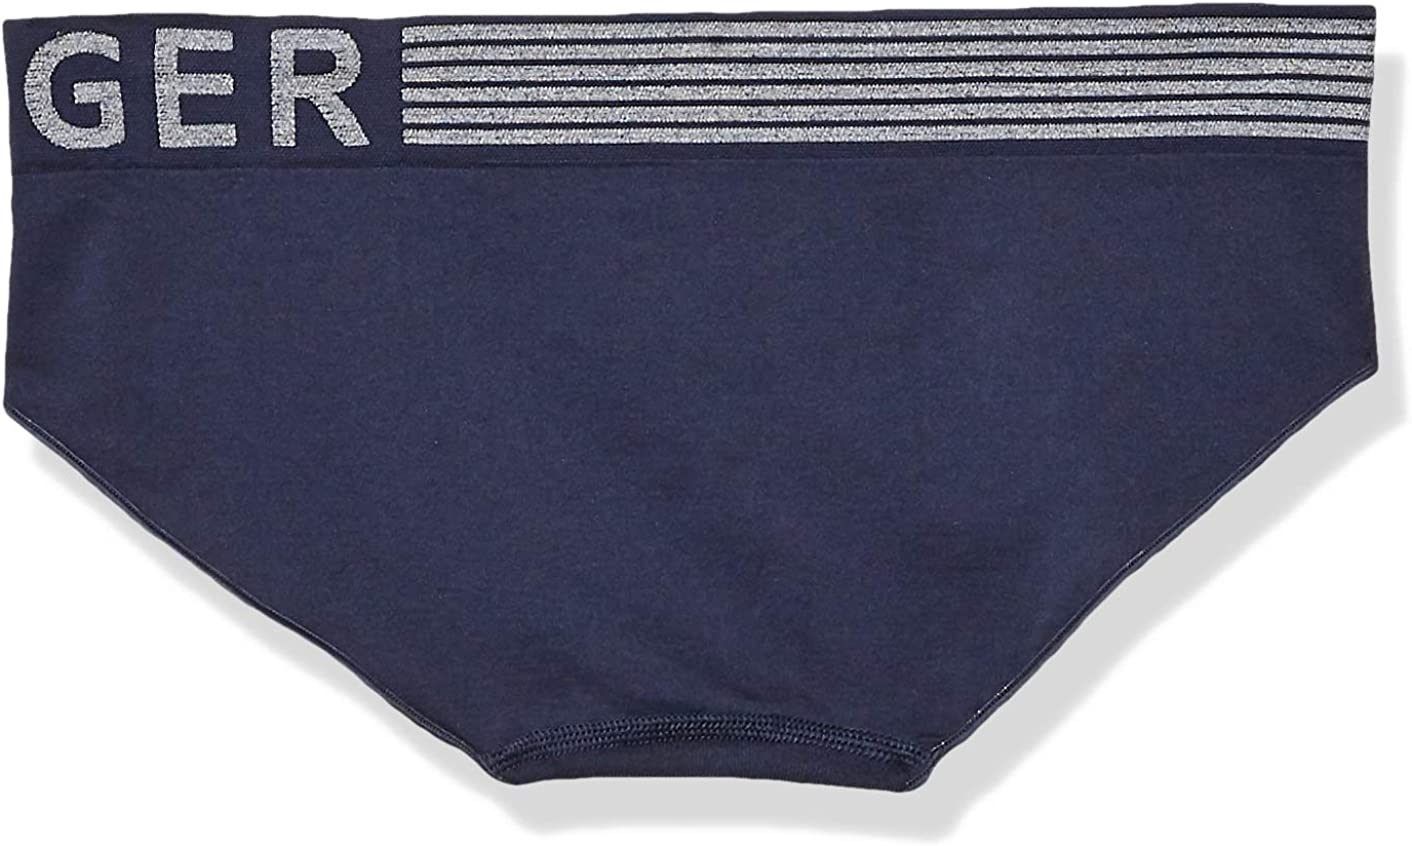 Tommy Hilfiger Womens Womens Seamless Hipster Underwear Panty Multipack Underwear